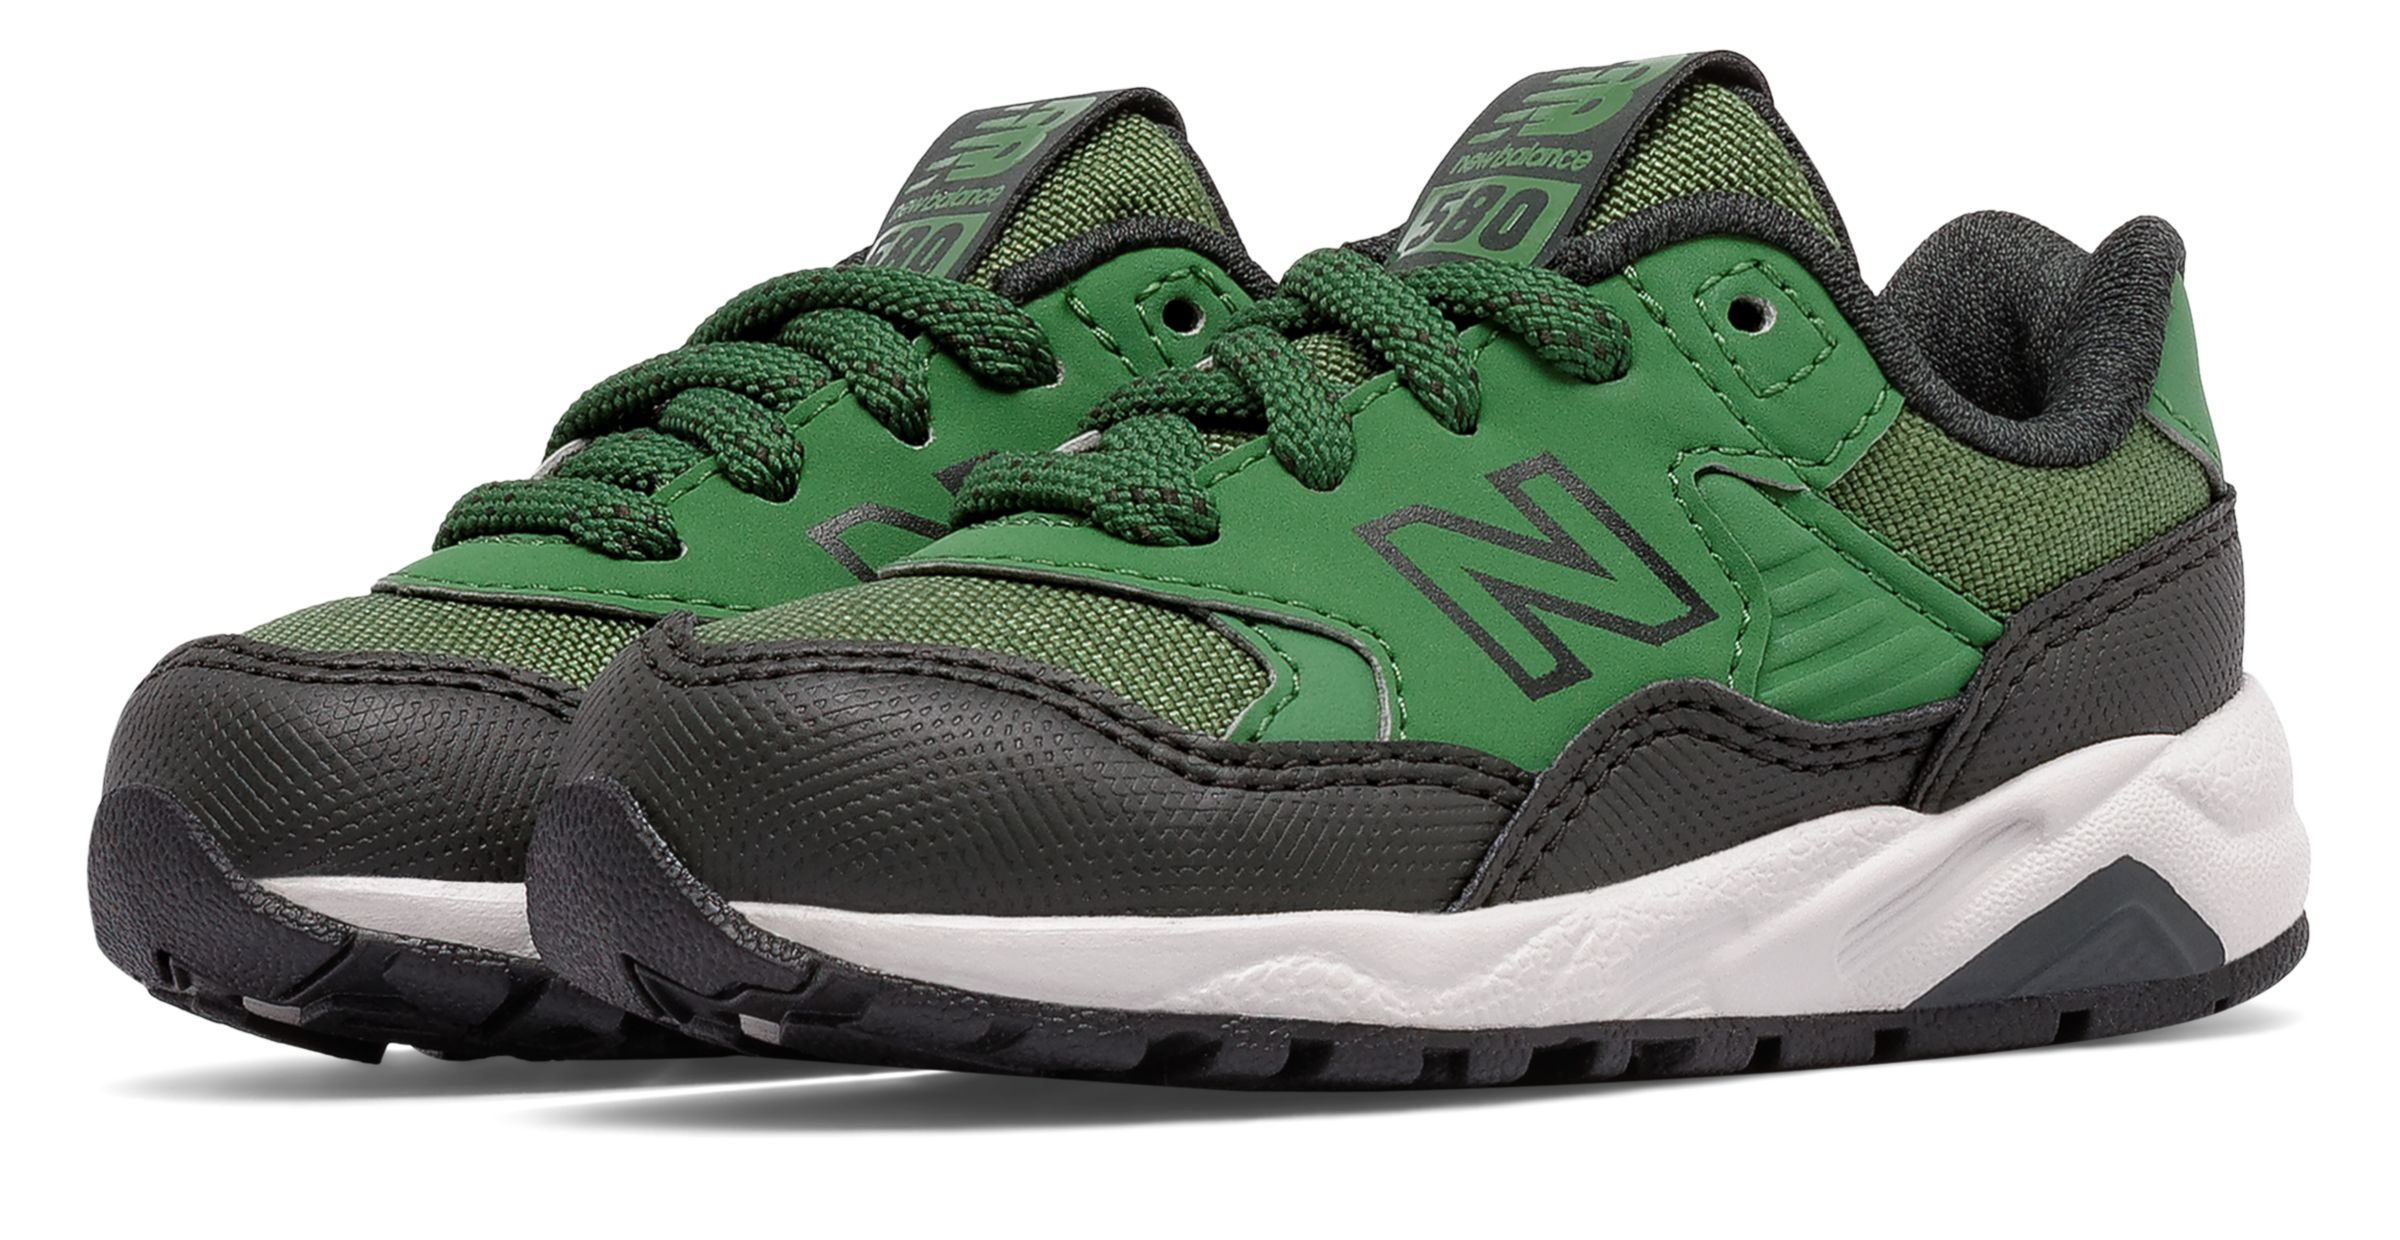 New Balance 580 Infant Boys Shoes Green